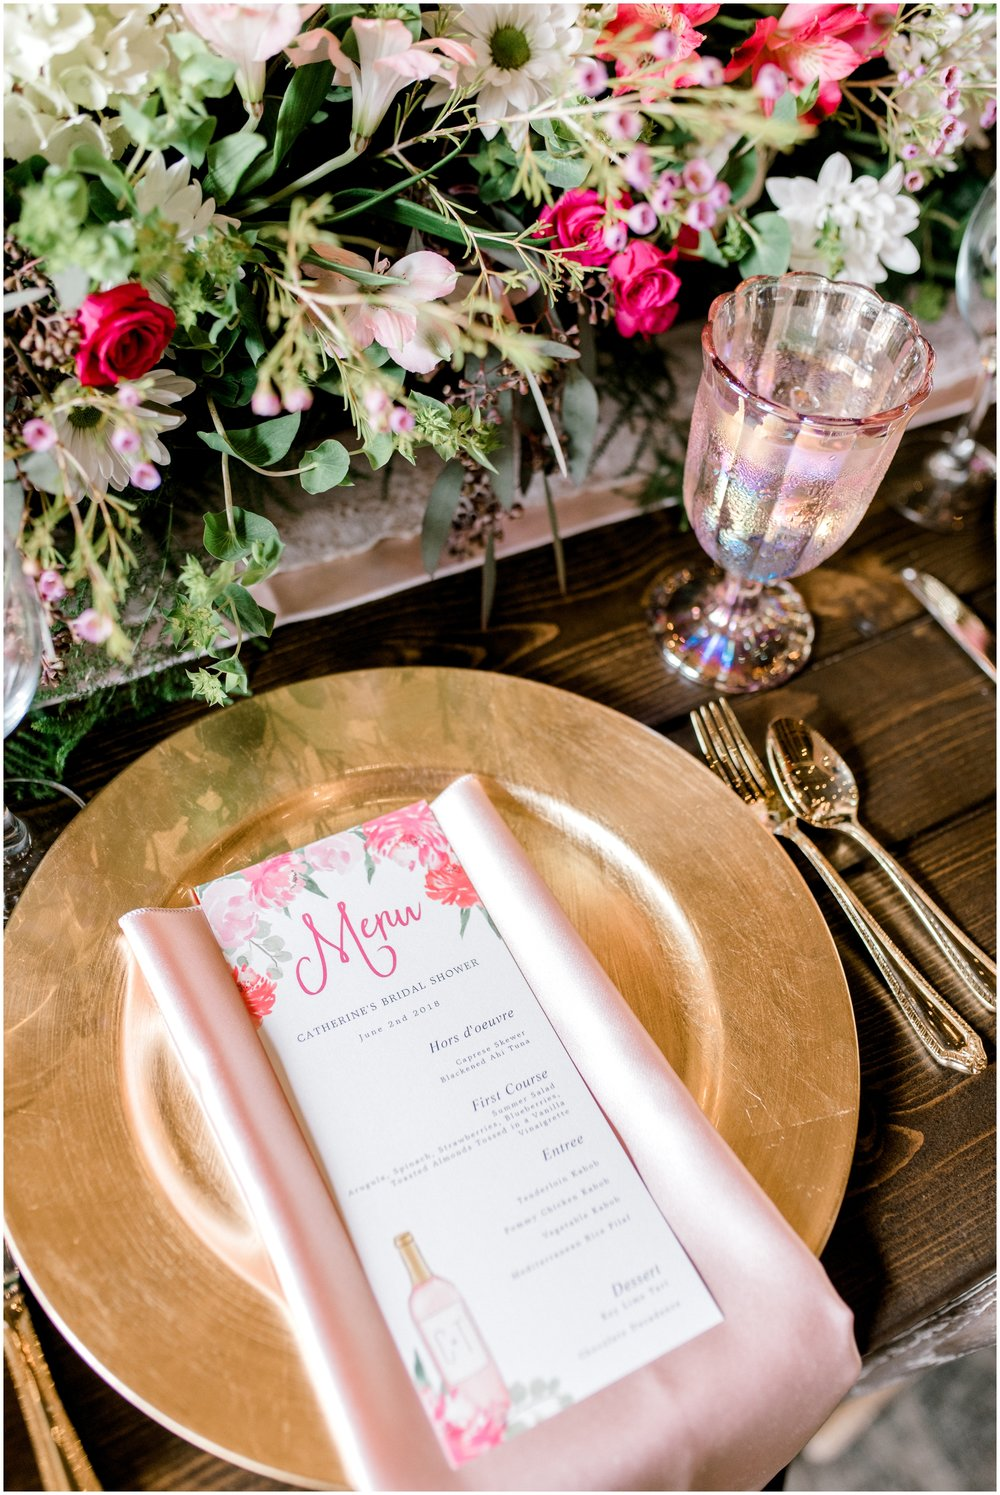 Spring Winery Bridal Shower at Nissley Vineyards in Lancaster County, PA - Krista Brackin Photography_0045.jpg